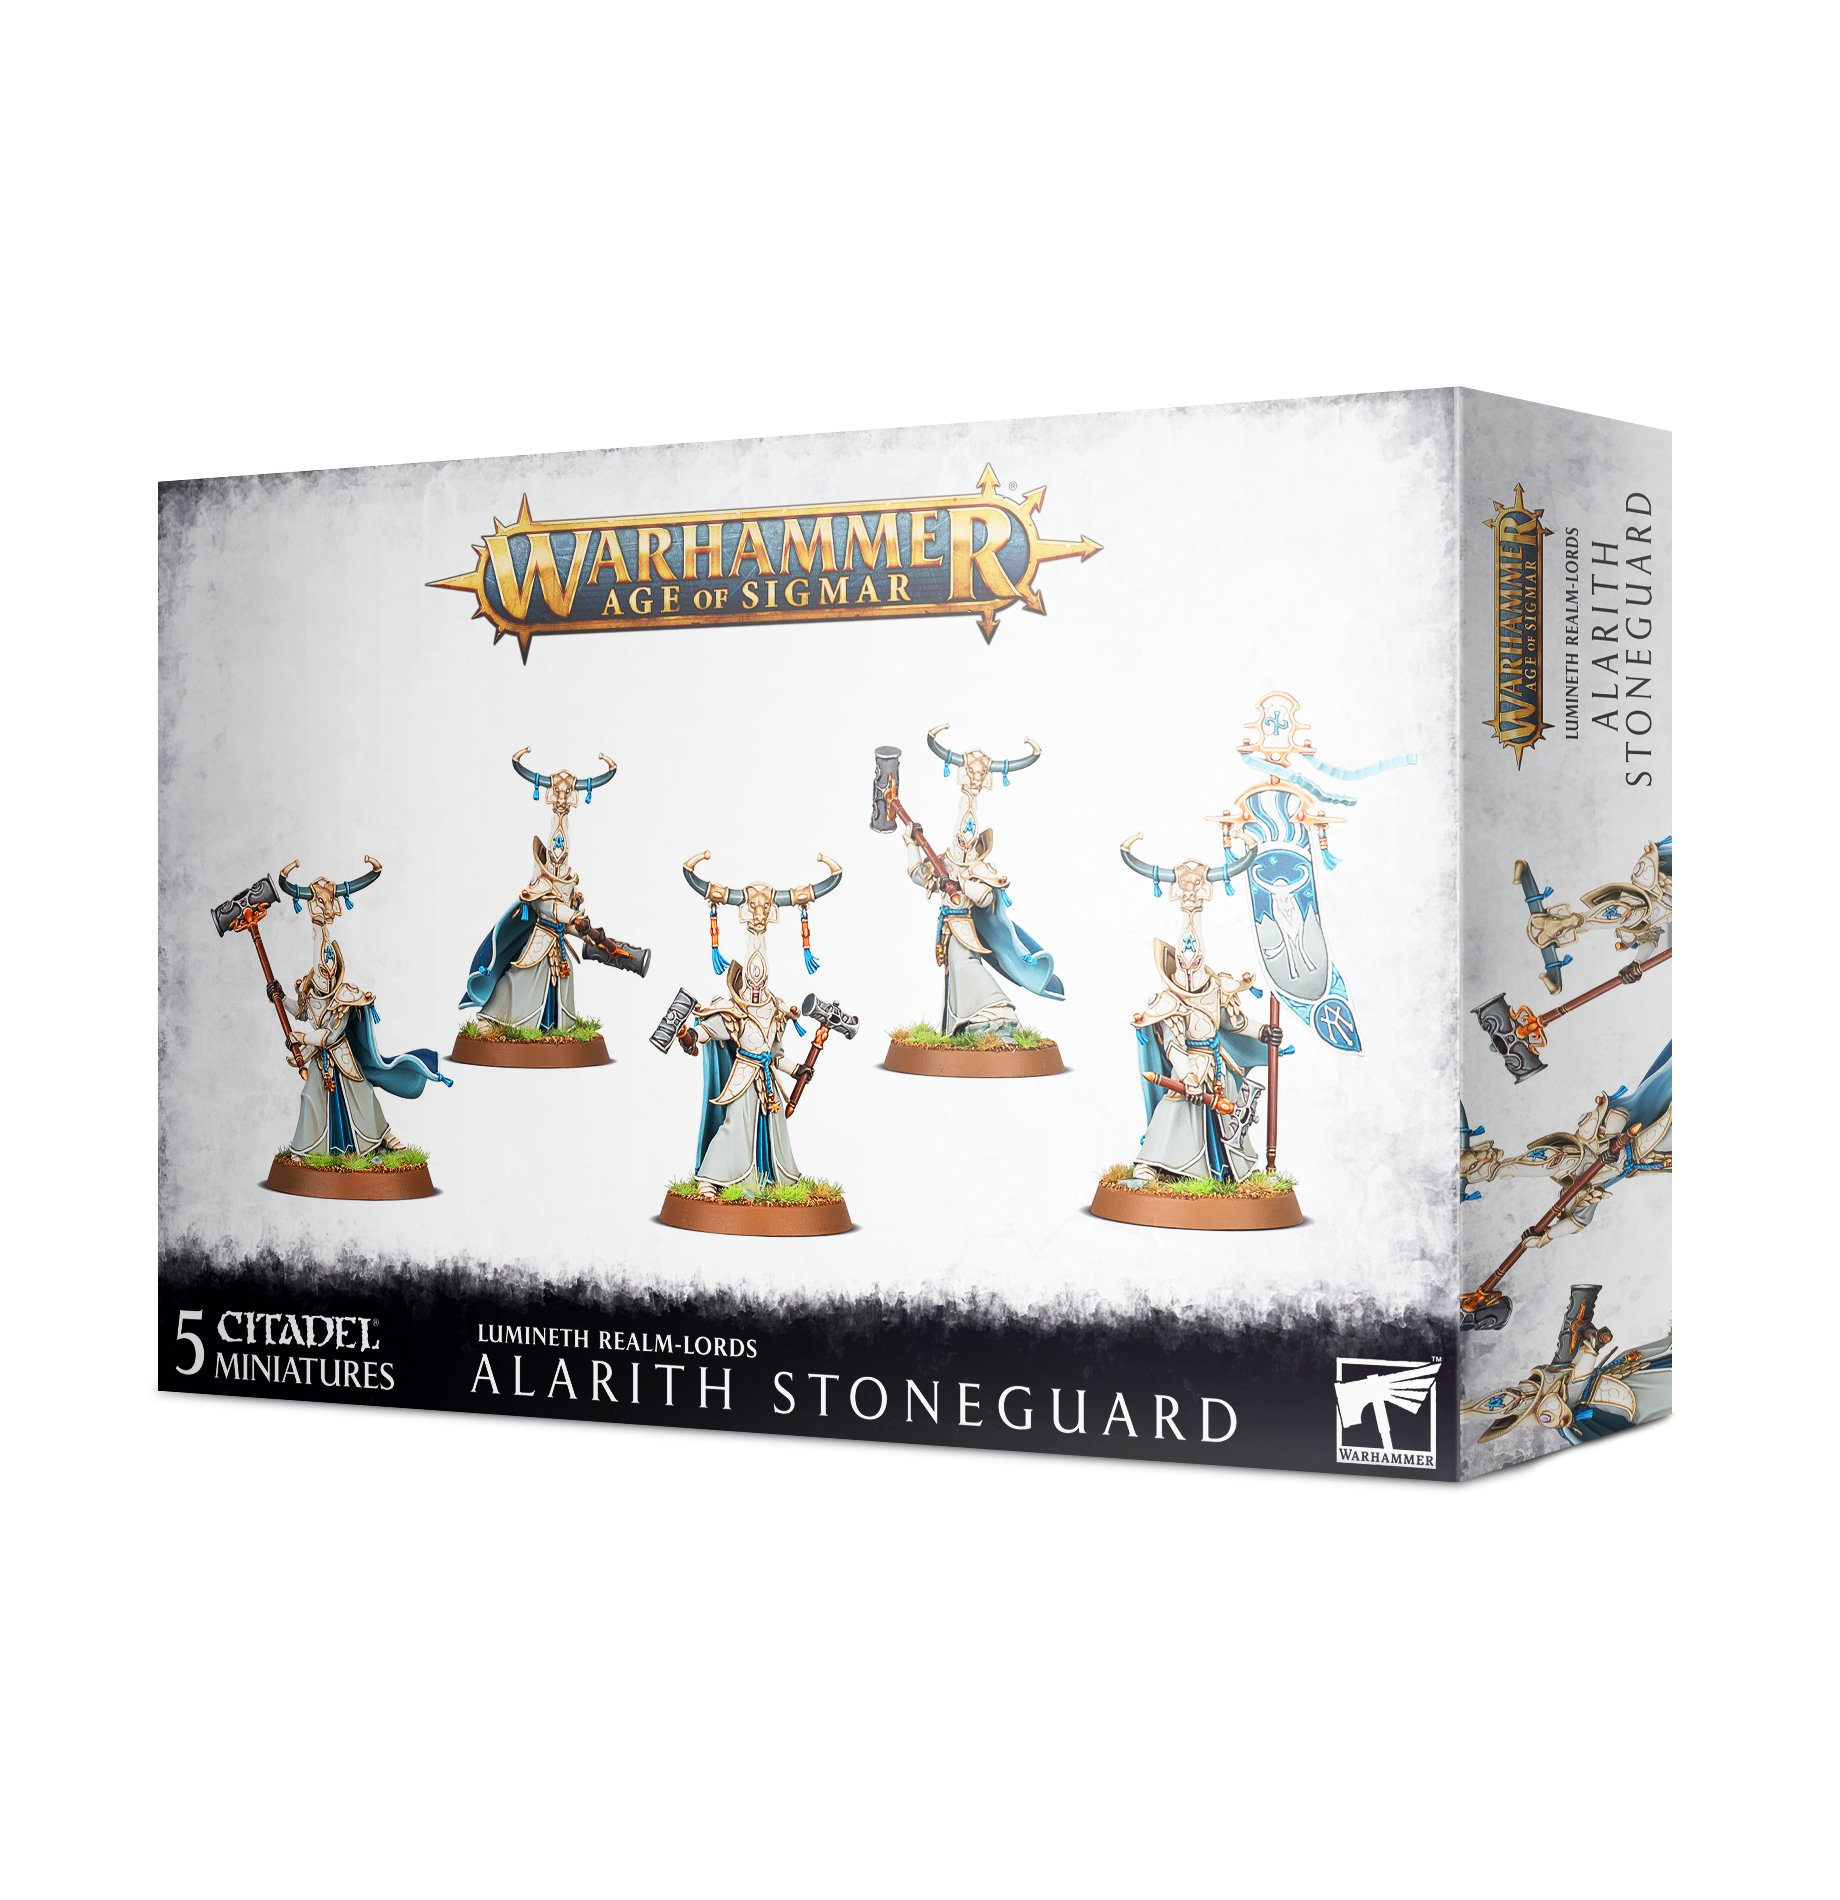 Warhammer Age of Sigmar: Lumineth Realm-lords: Alarith Stoneguard